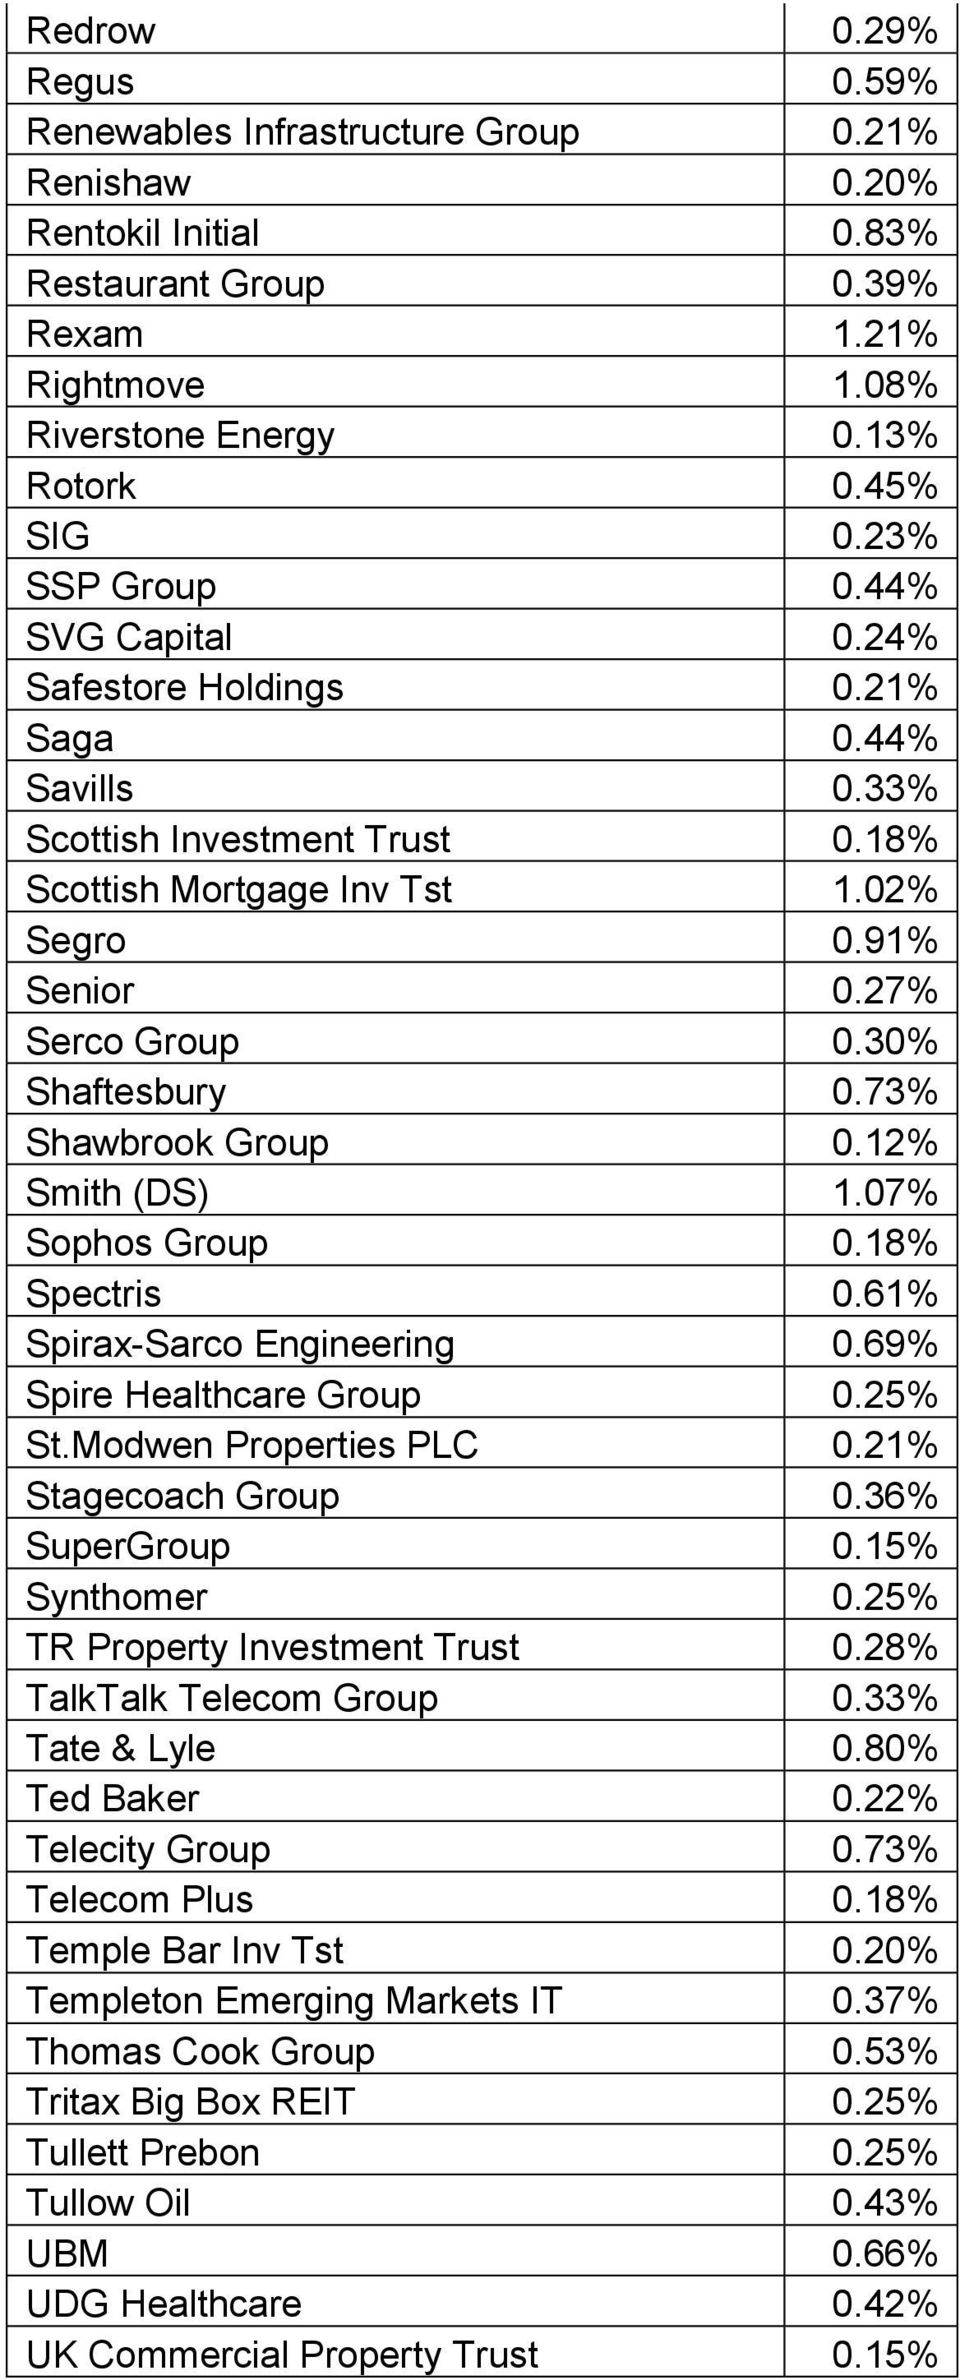 Modwen Properties PLC Stagecoach Group SuperGroup Synthomer TR Property Investment Trust TalkTalk Telecom Group Tate & Lyle Ted Baker Telecity Group Telecom Plus Temple Bar Inv Tst Templeton Emerging